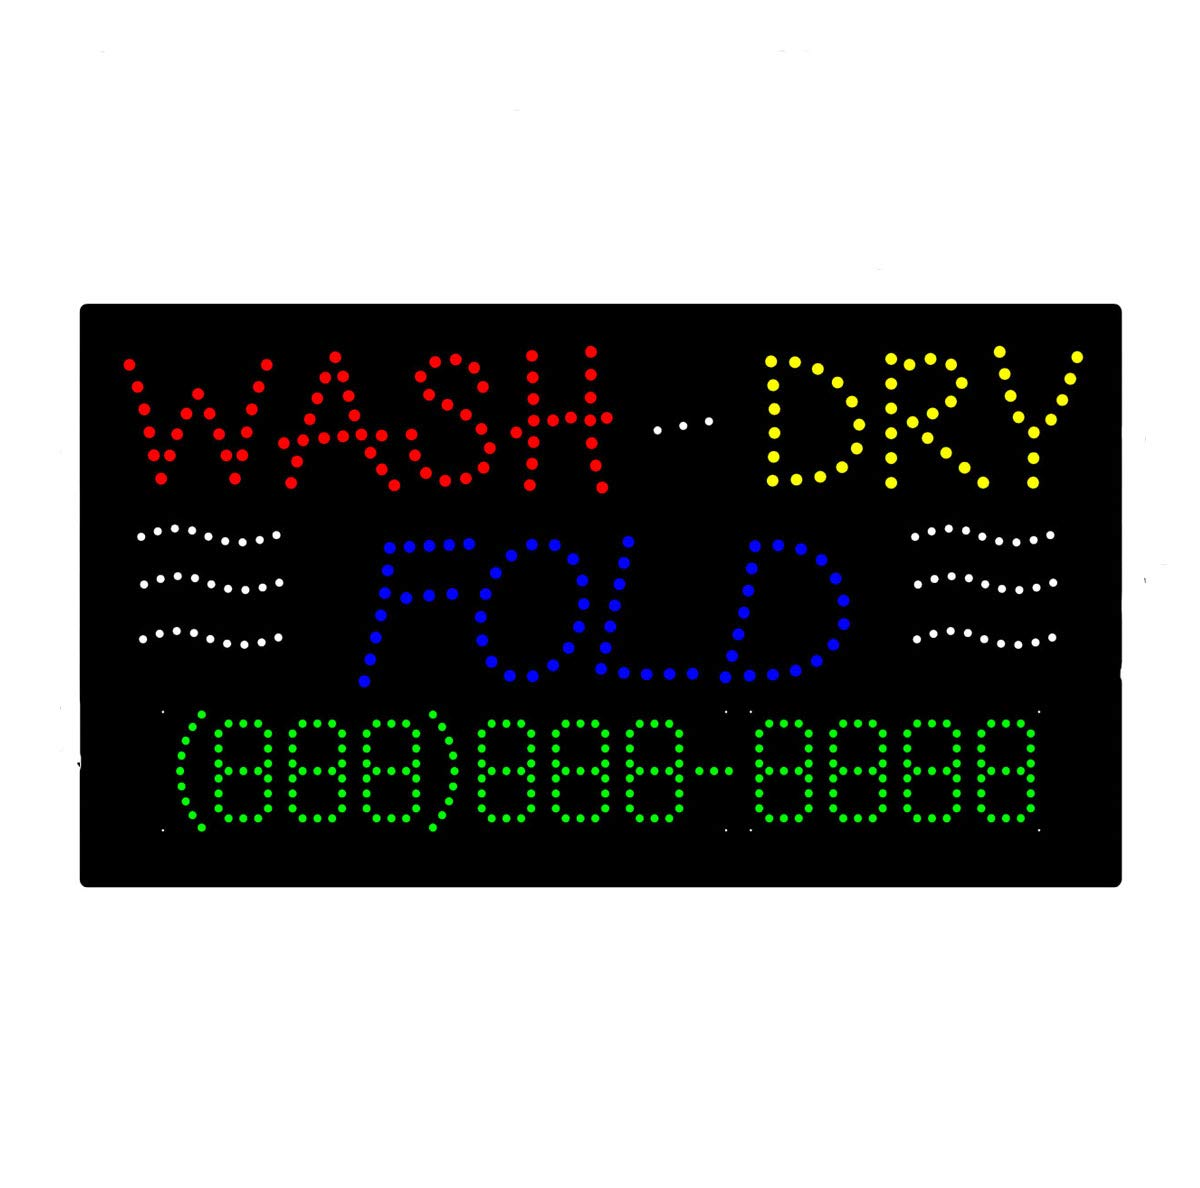 LED Laundromat Cleaners Open Light Sign Board Super Bright Electric Advertising Display Board Banner for Laundry Service Dry Cleaners Business Retail Shop Store Window 31 x 17 inches